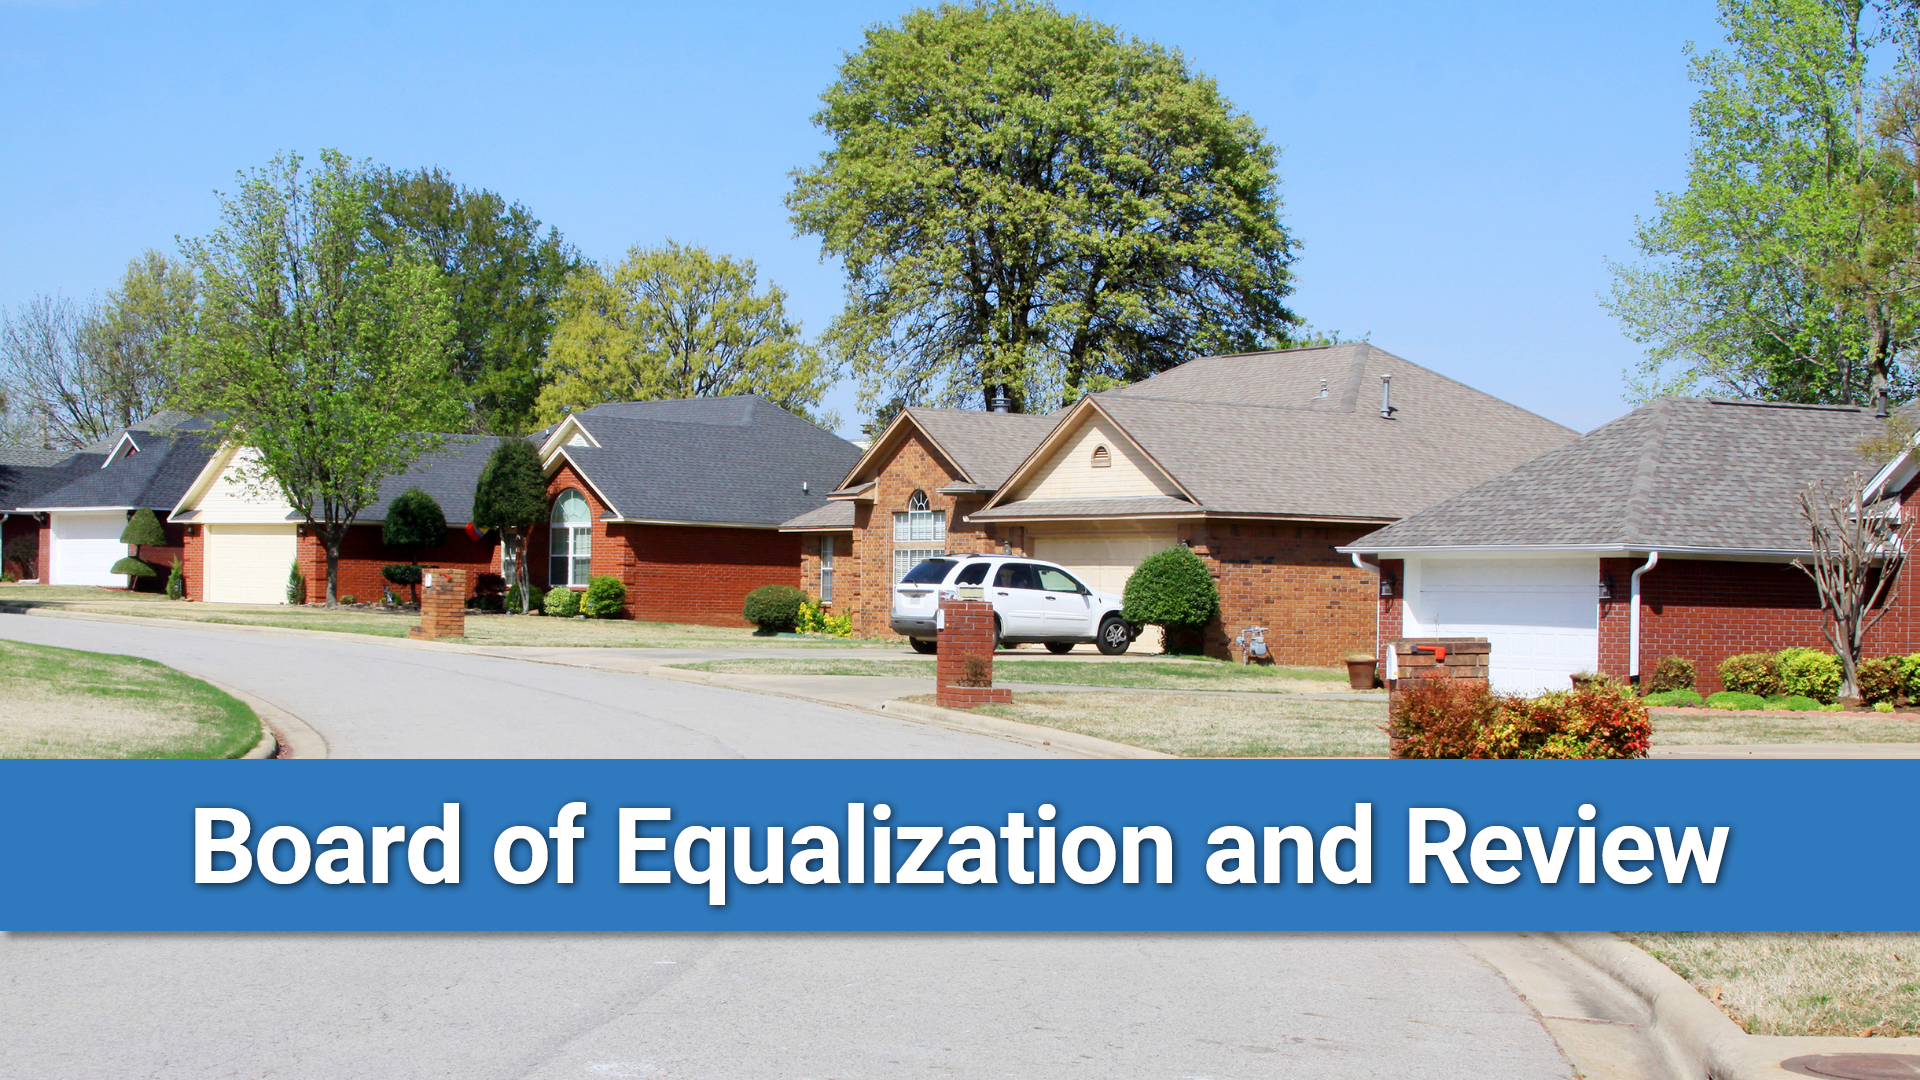 Board of Equalization and Review